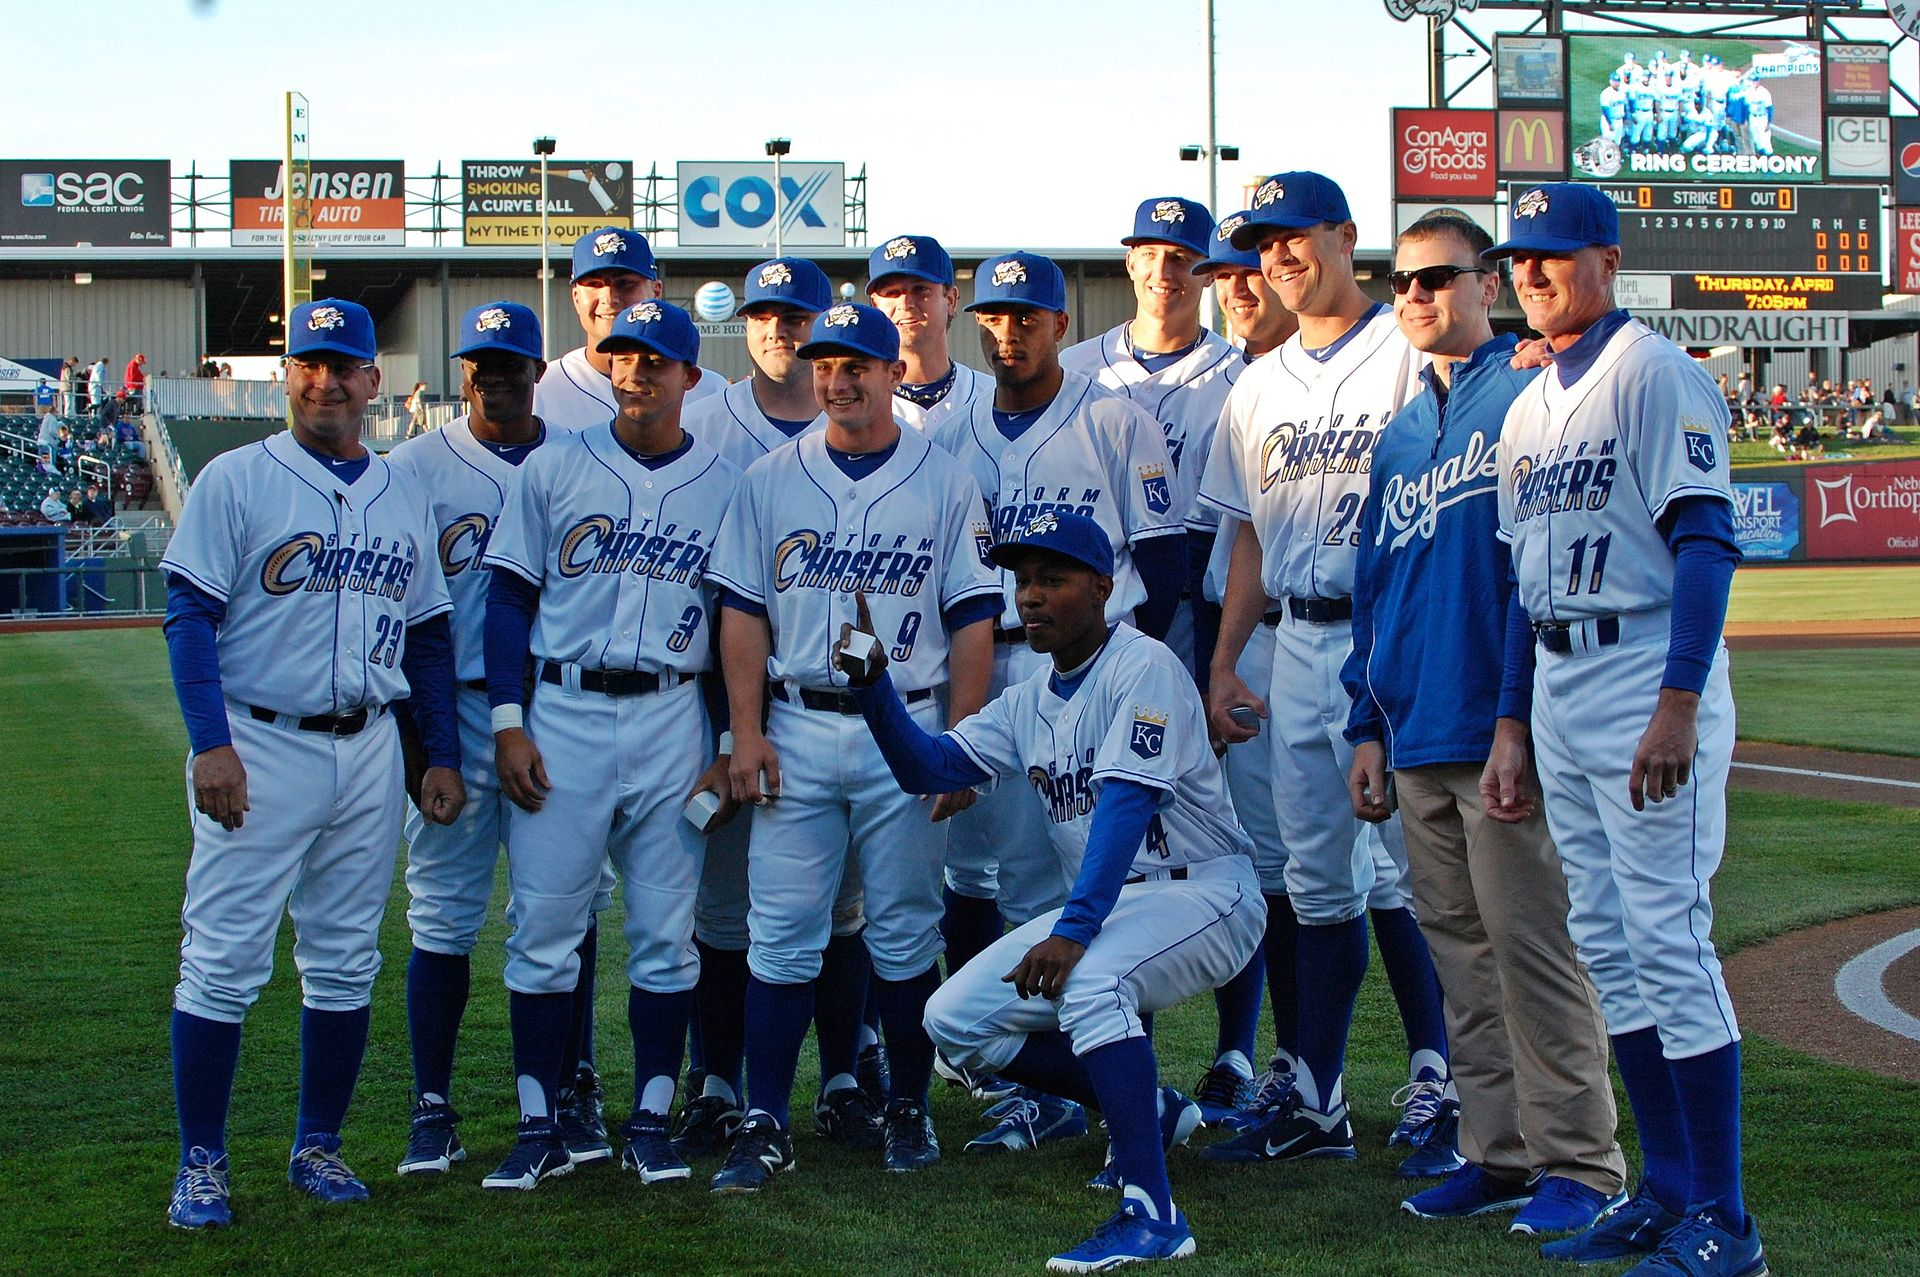 Omaha Storm Chasers - Wikipedia